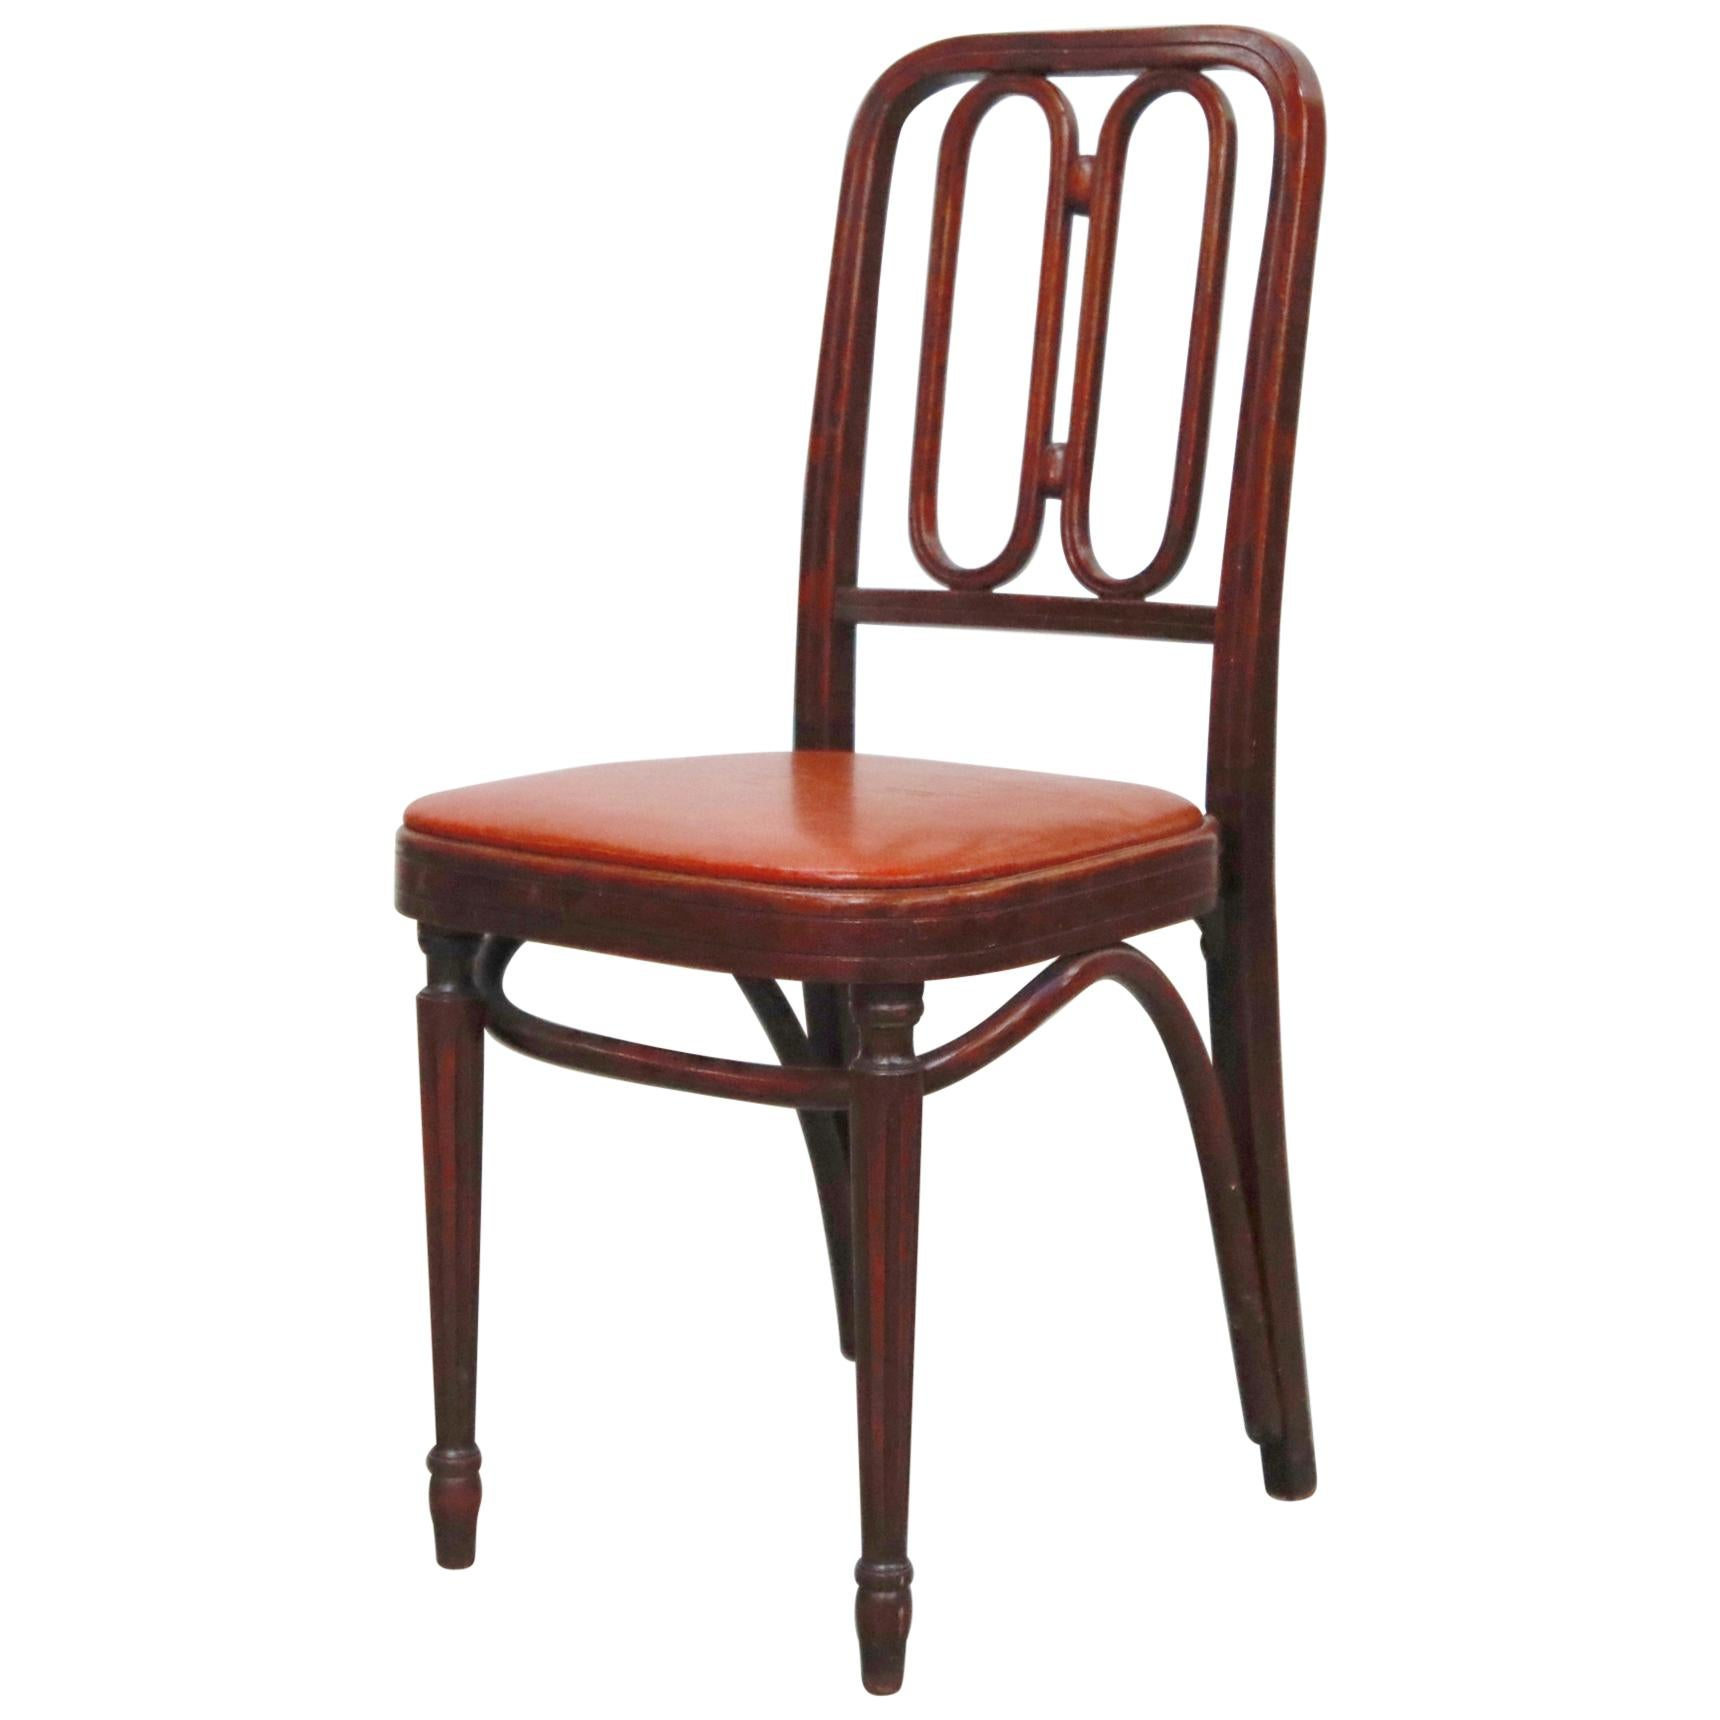 Bentwood Dining Chair by Josef Hoffmann for Thonet, circa 1920s, Signed